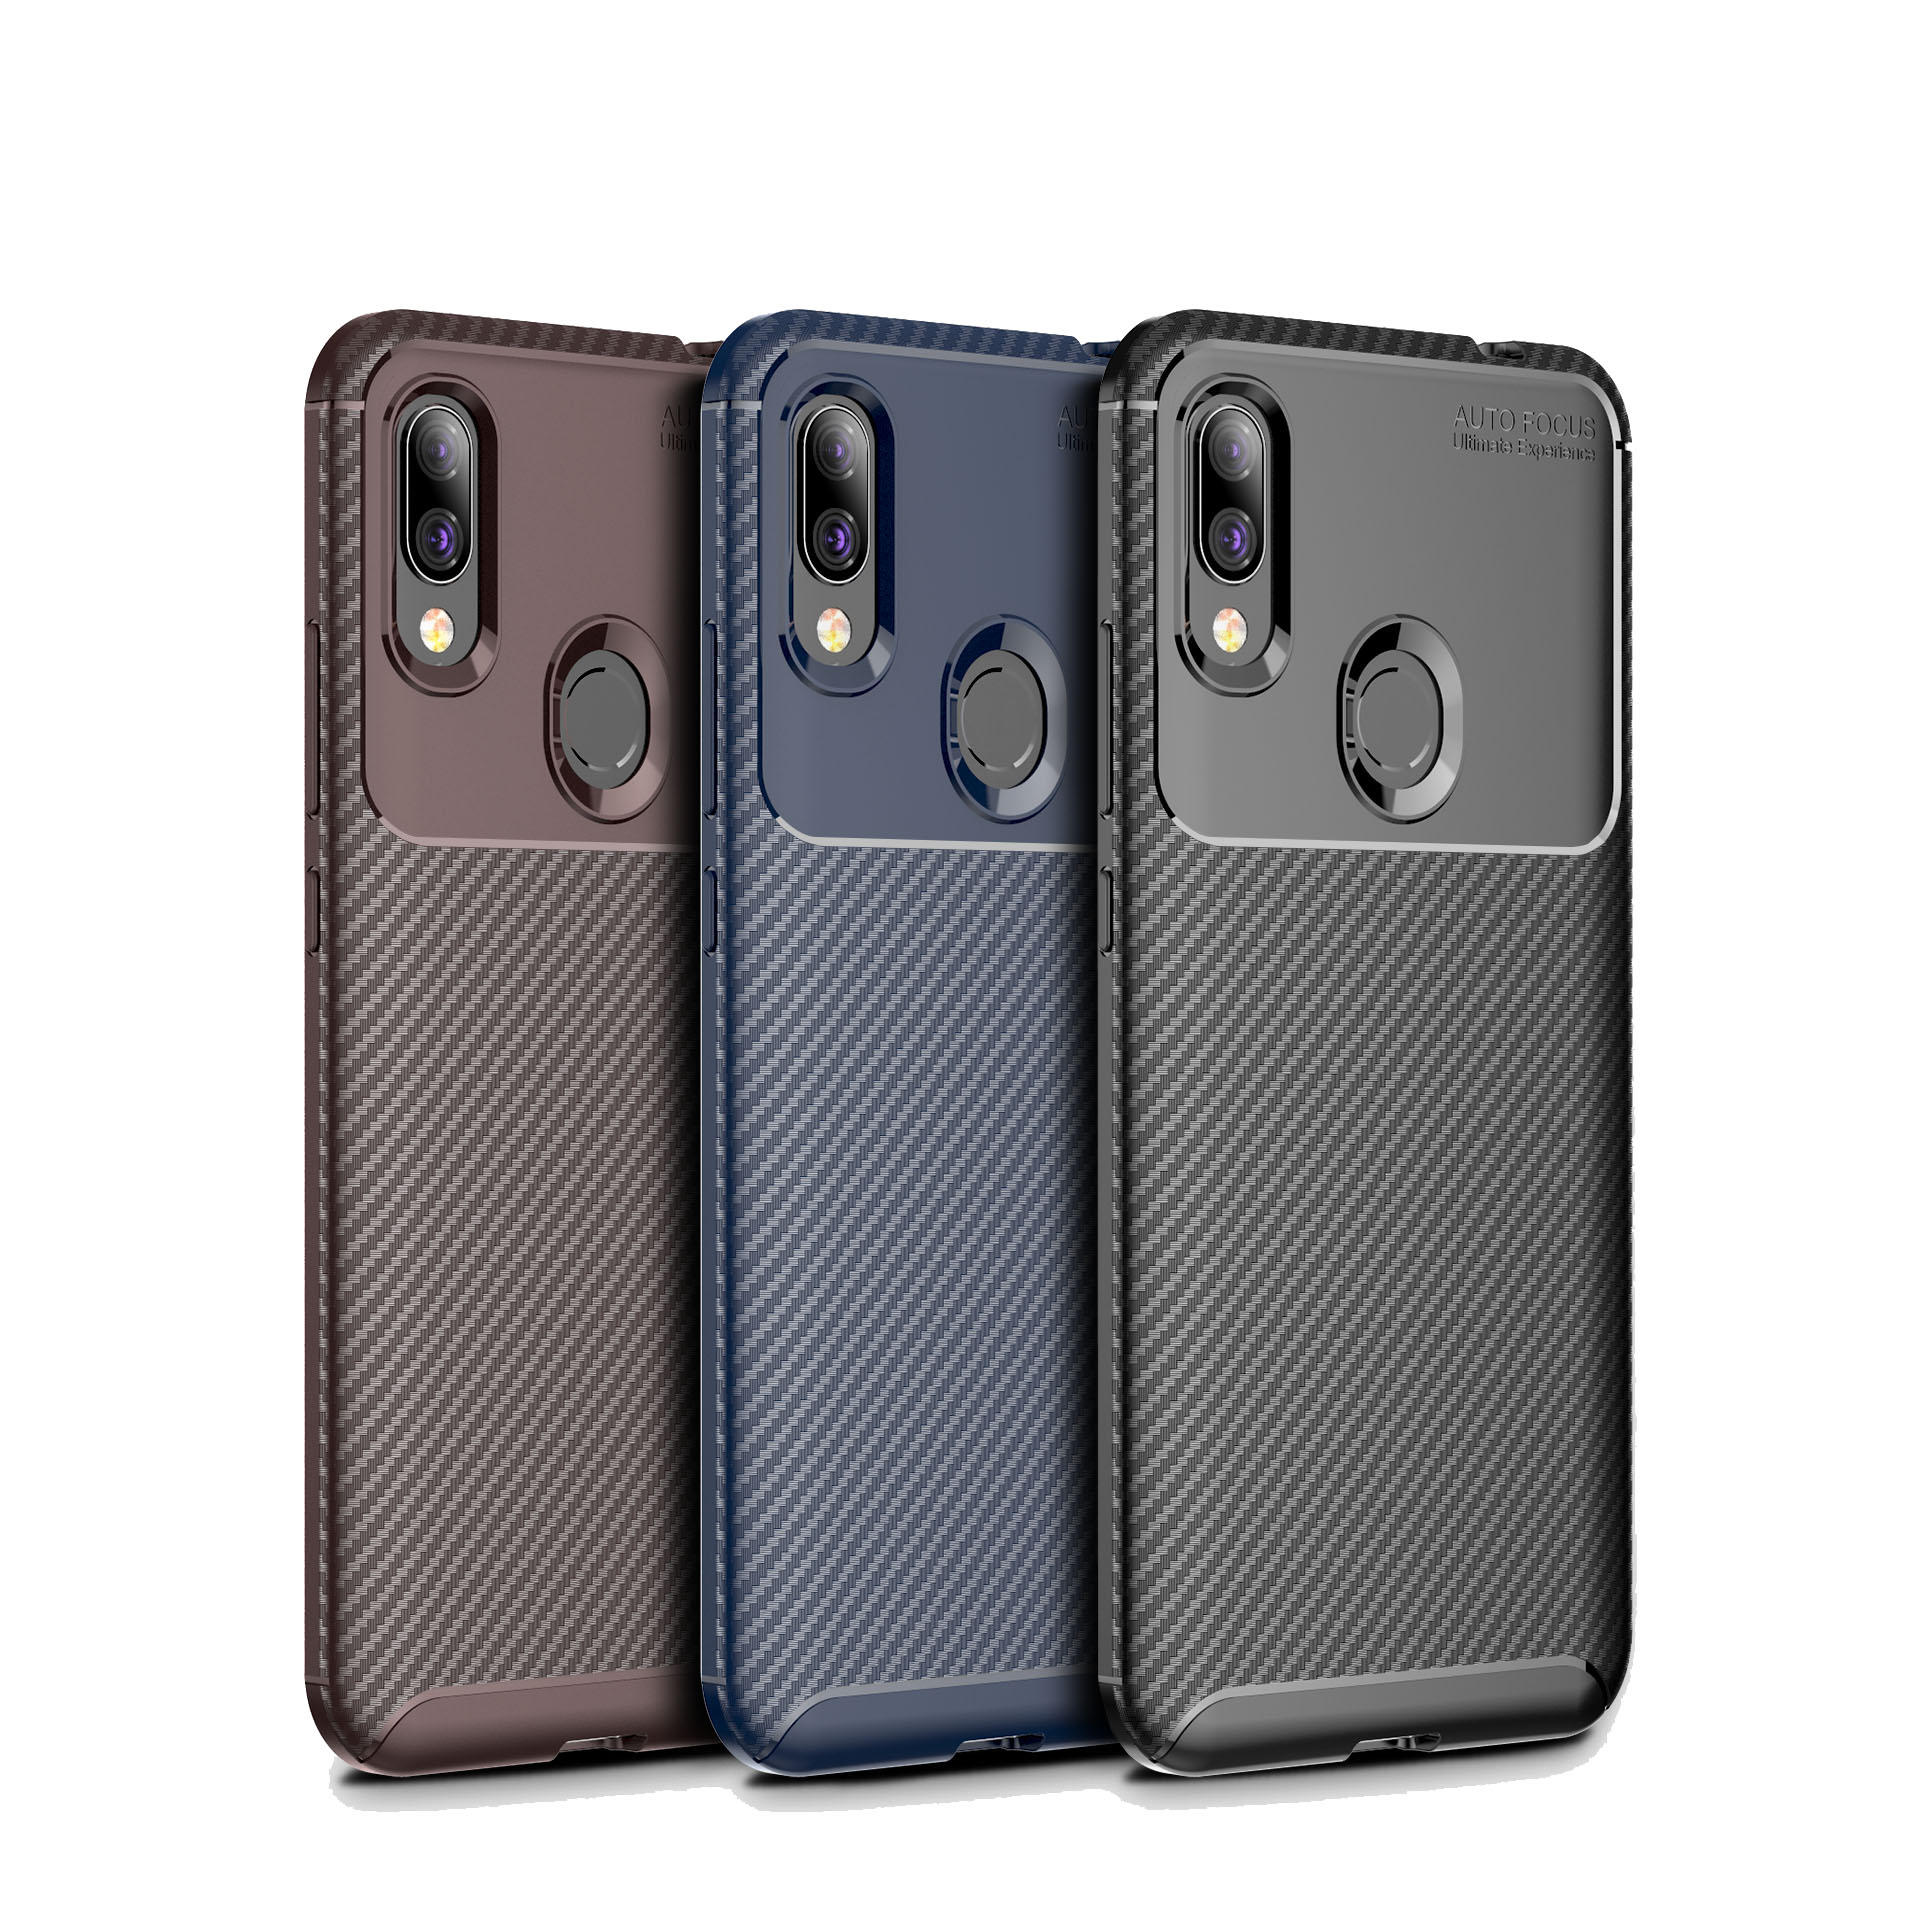 Bakeey Armor Bumper Shockproof Soft Silicone Protective Case for Xiaomi Redmi Note 7/ Redmi Note 7 PRO